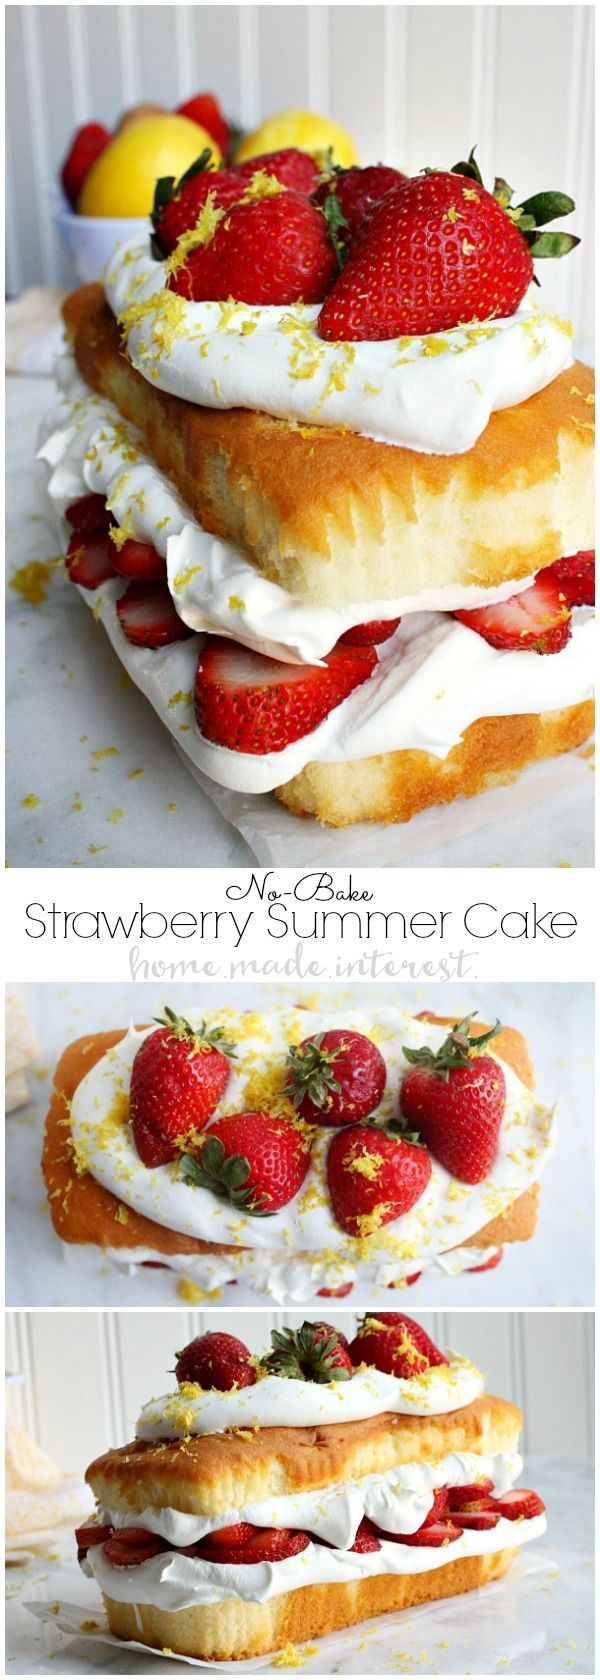 This light and fluffy no bake cake recipe is filled with the flavors of summer. A three layer pound cake stuffed with fluffy whipped topping, sweet strawberries, and topped with a sprinkle of lemon zest. This no bake strawberry shortcake is great for part